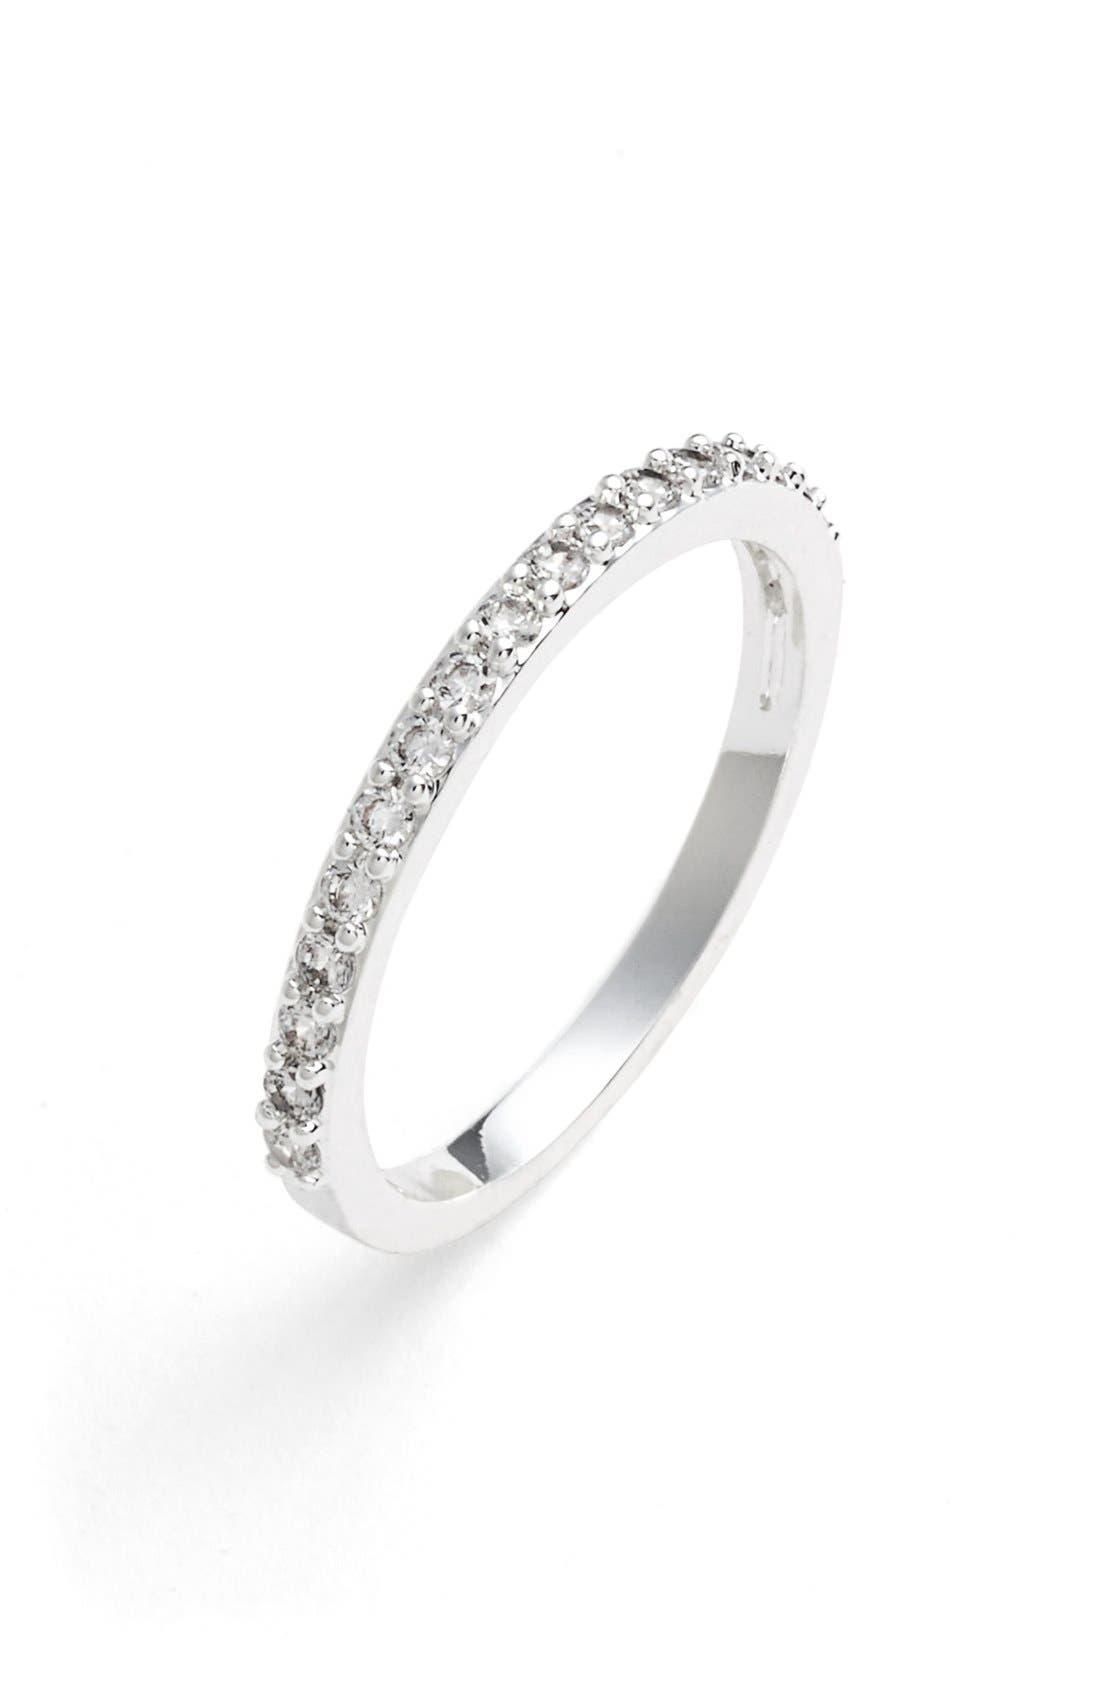 'Rings & Things' Band Ring,                         Main,                         color, Silver/ Marcasite/ Crystal